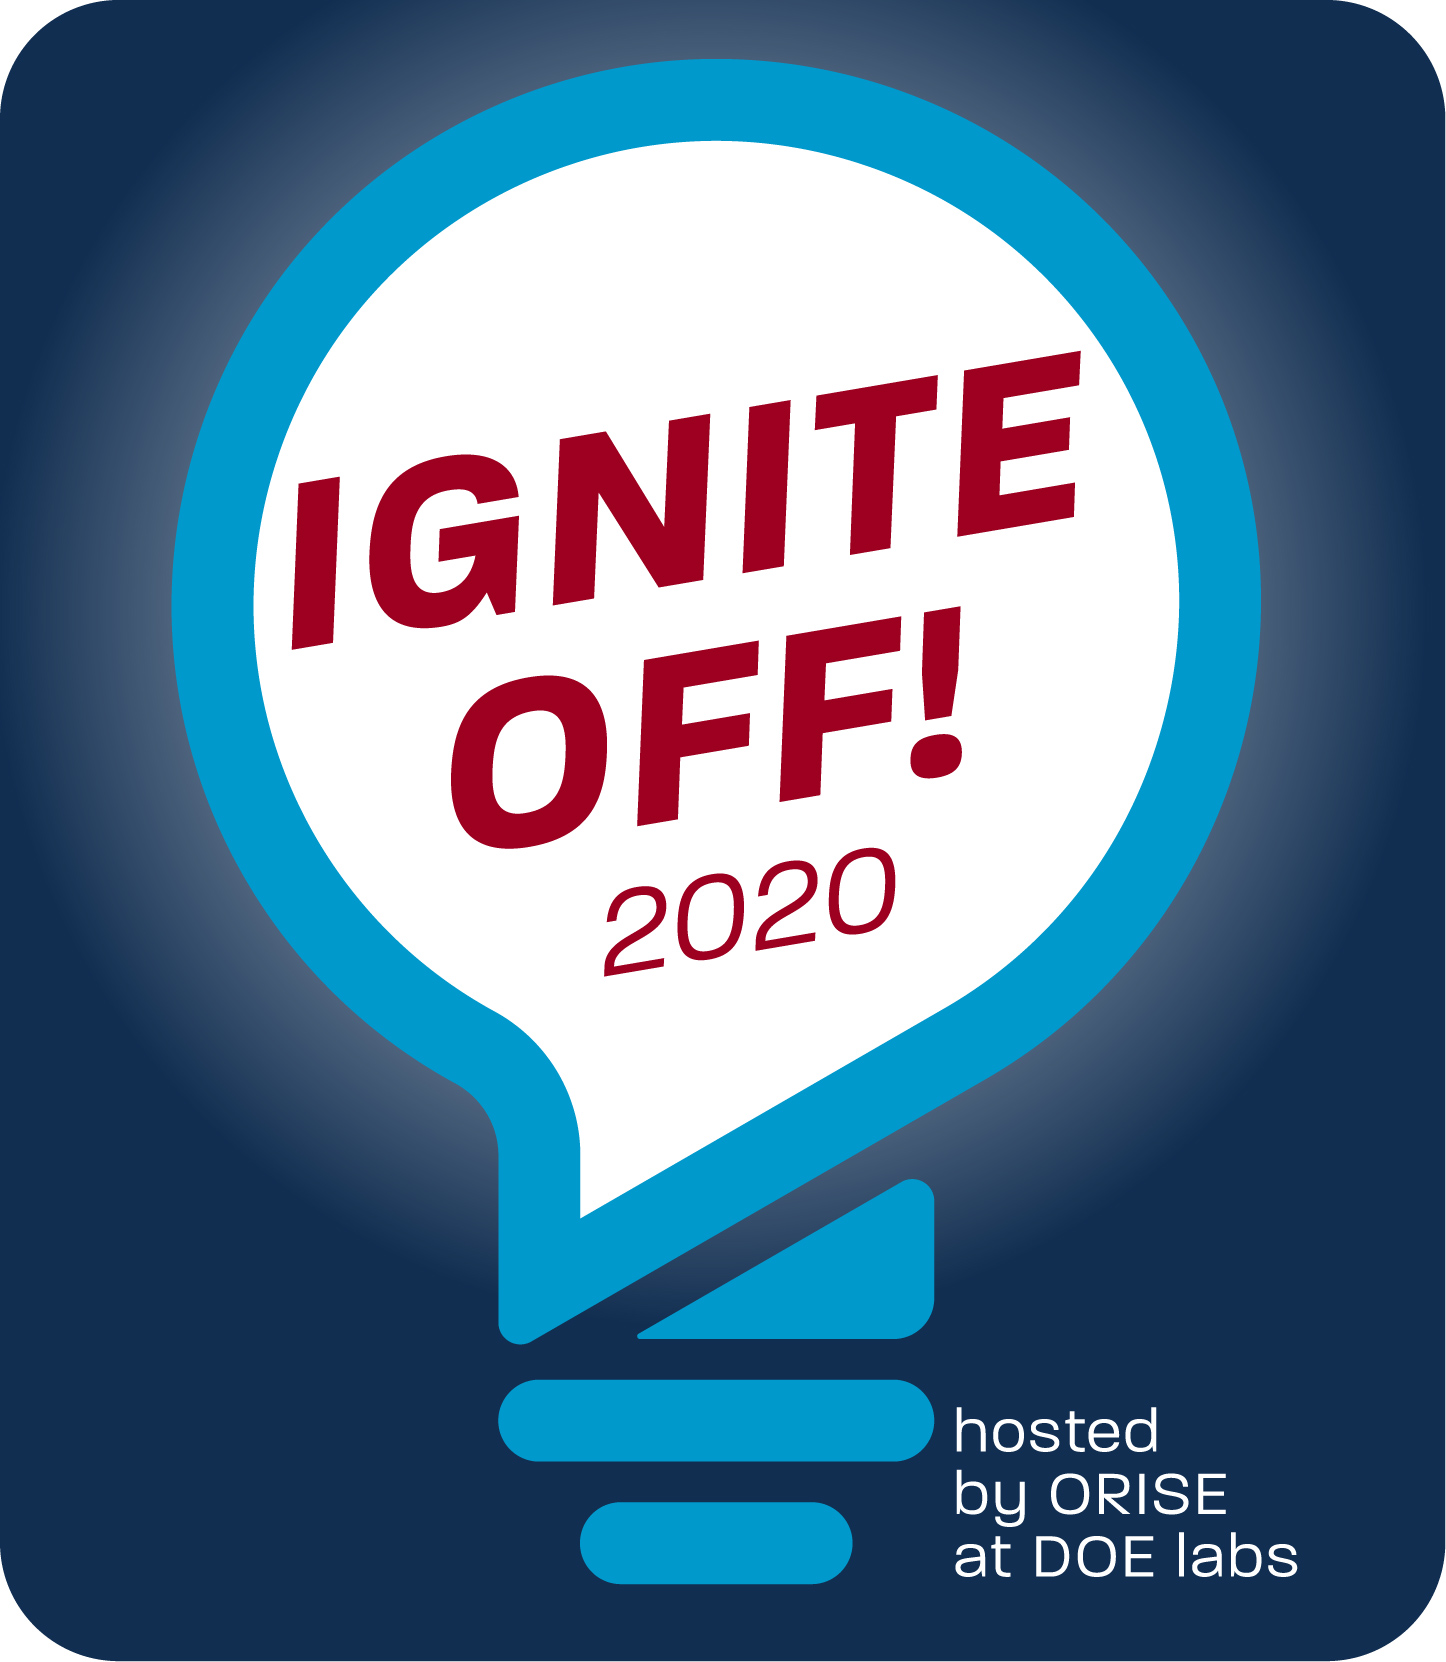 ORISE-NETL Participant named winner of 2020 Ignite Off Competition